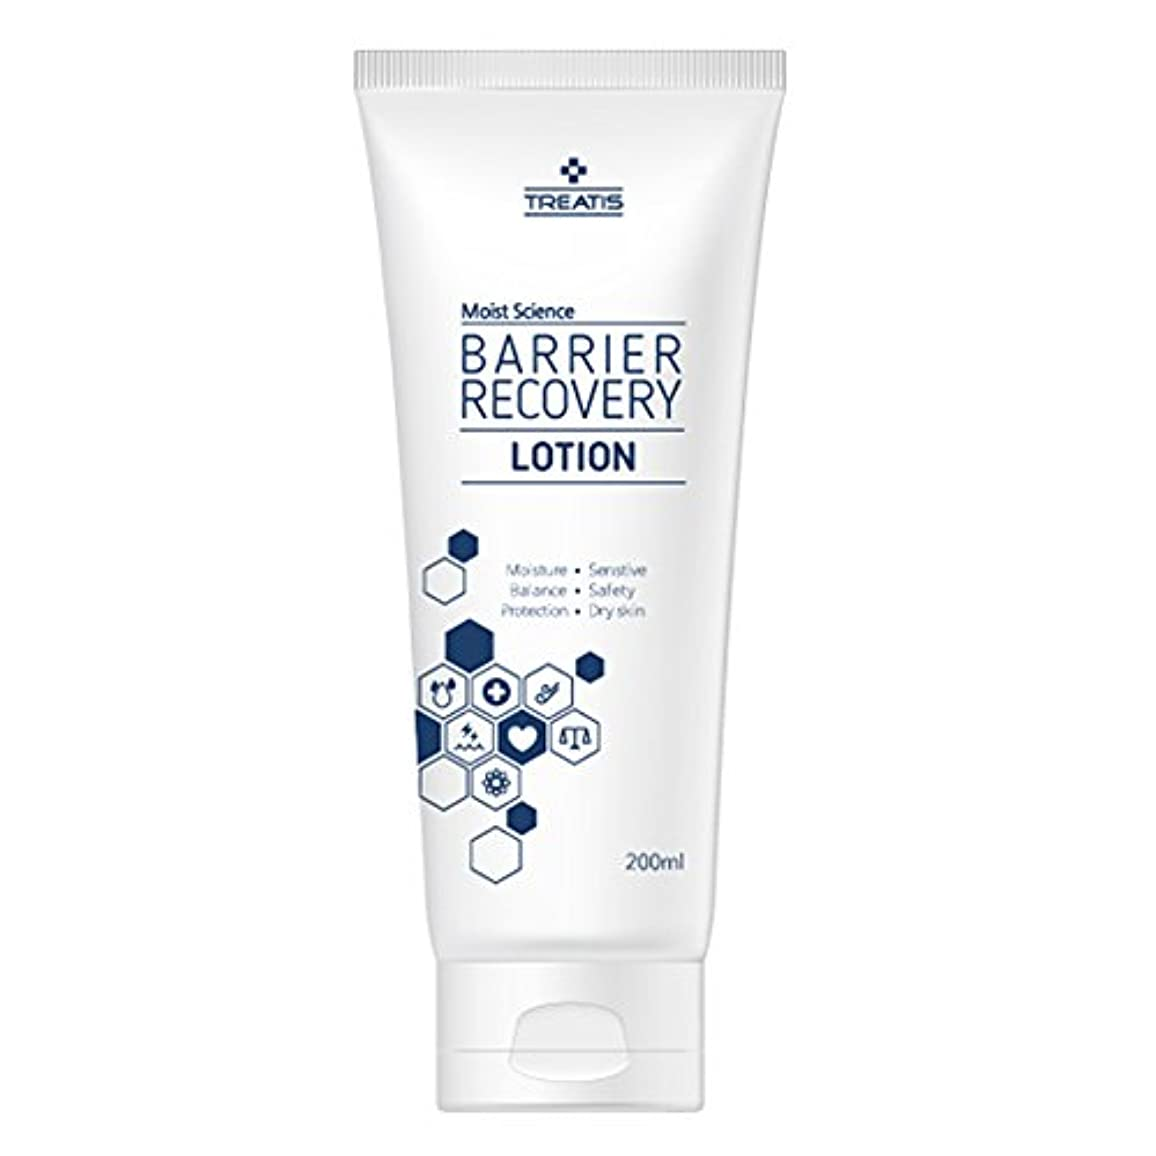 テープ足首くちばしTreatis barrier recovery lotion 7oz (200ml)/Moisture, Senstive, Balance, Safty, Protection, Dry skin [並行輸入品]